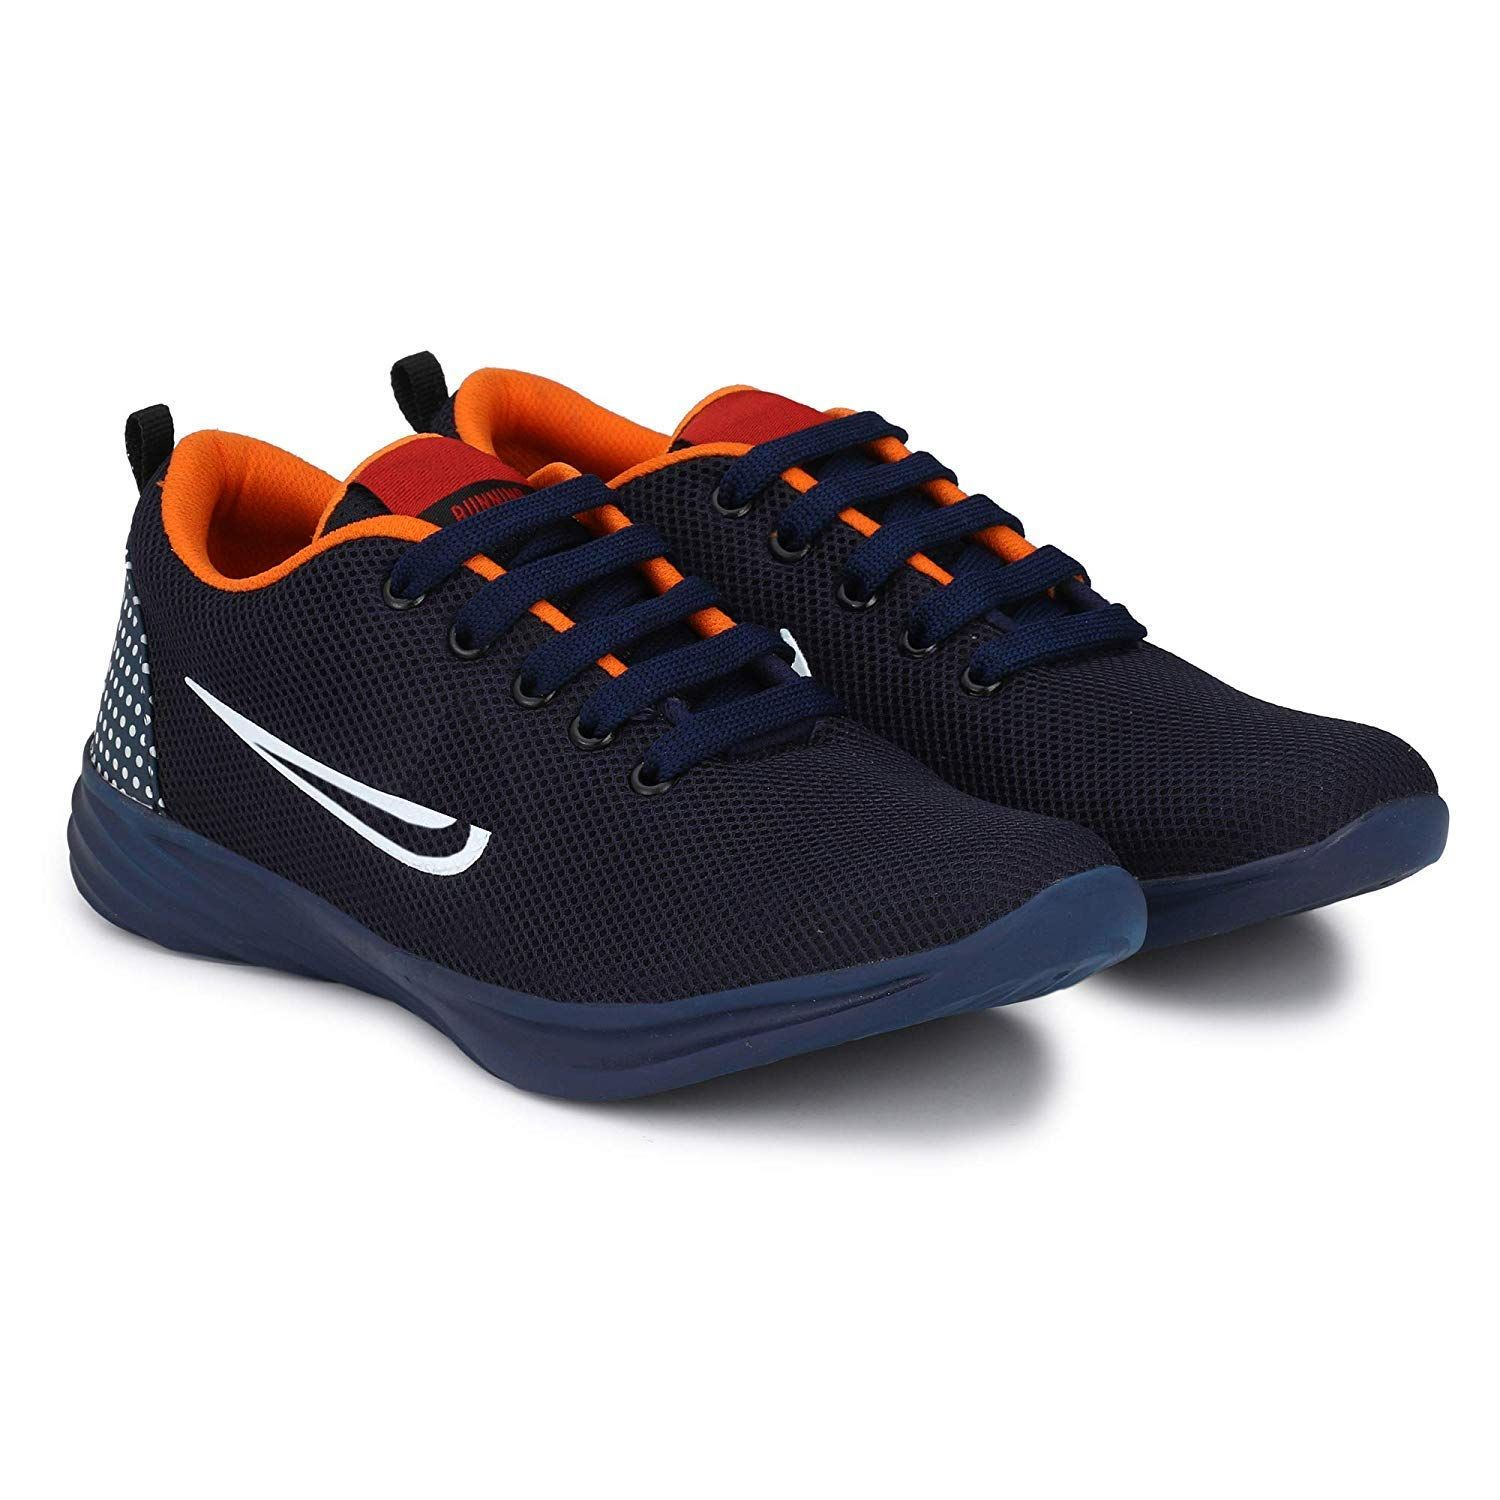 brand new b2c33 2379e friends shoes   Sneakers   Sneakers, Sneakers nike, Air max sneakers